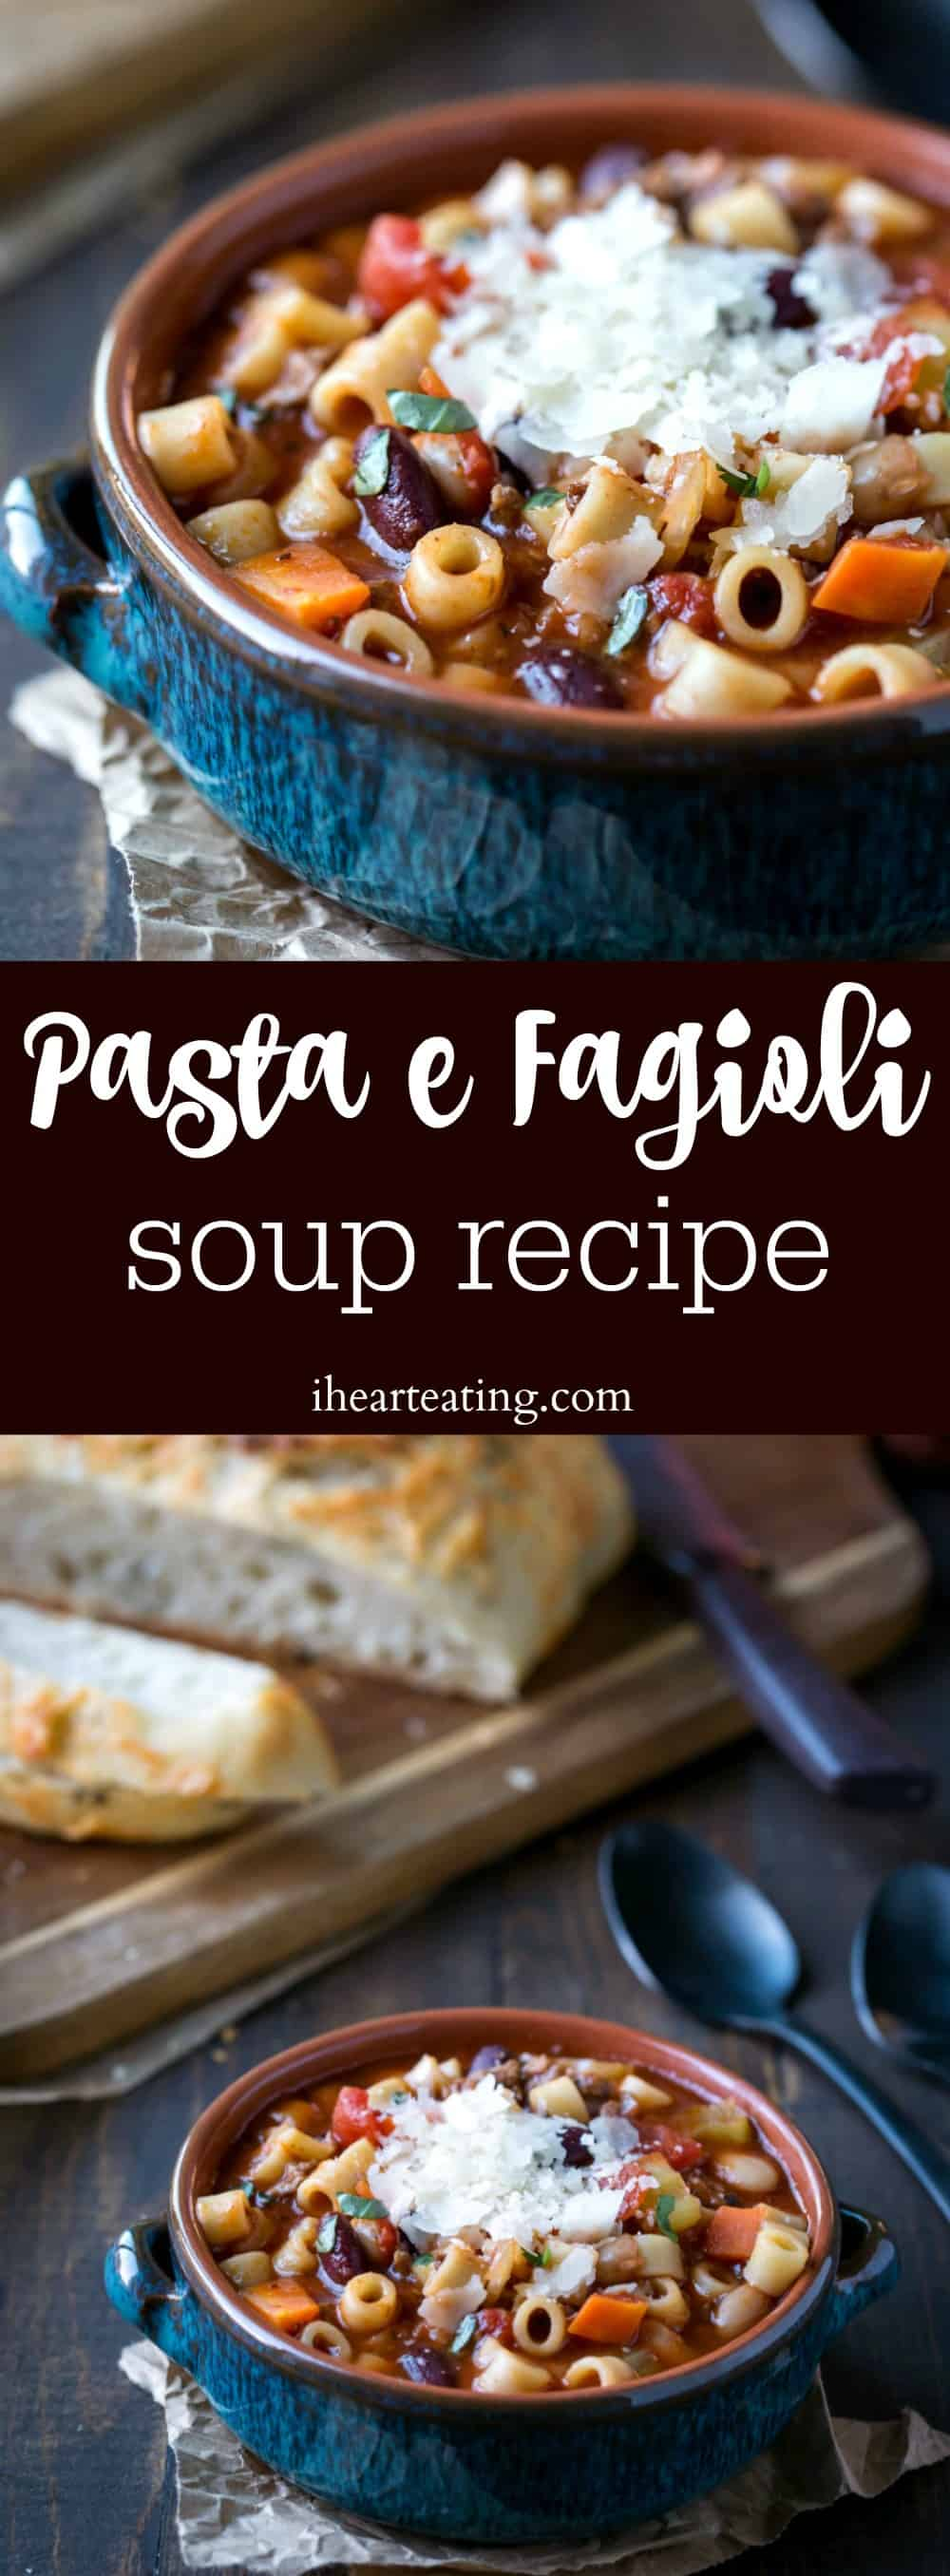 Pasta e fagioli soup recipe is a copycat Olive Garden recipe. The soup is easy to make, hearty, and inexpensive.